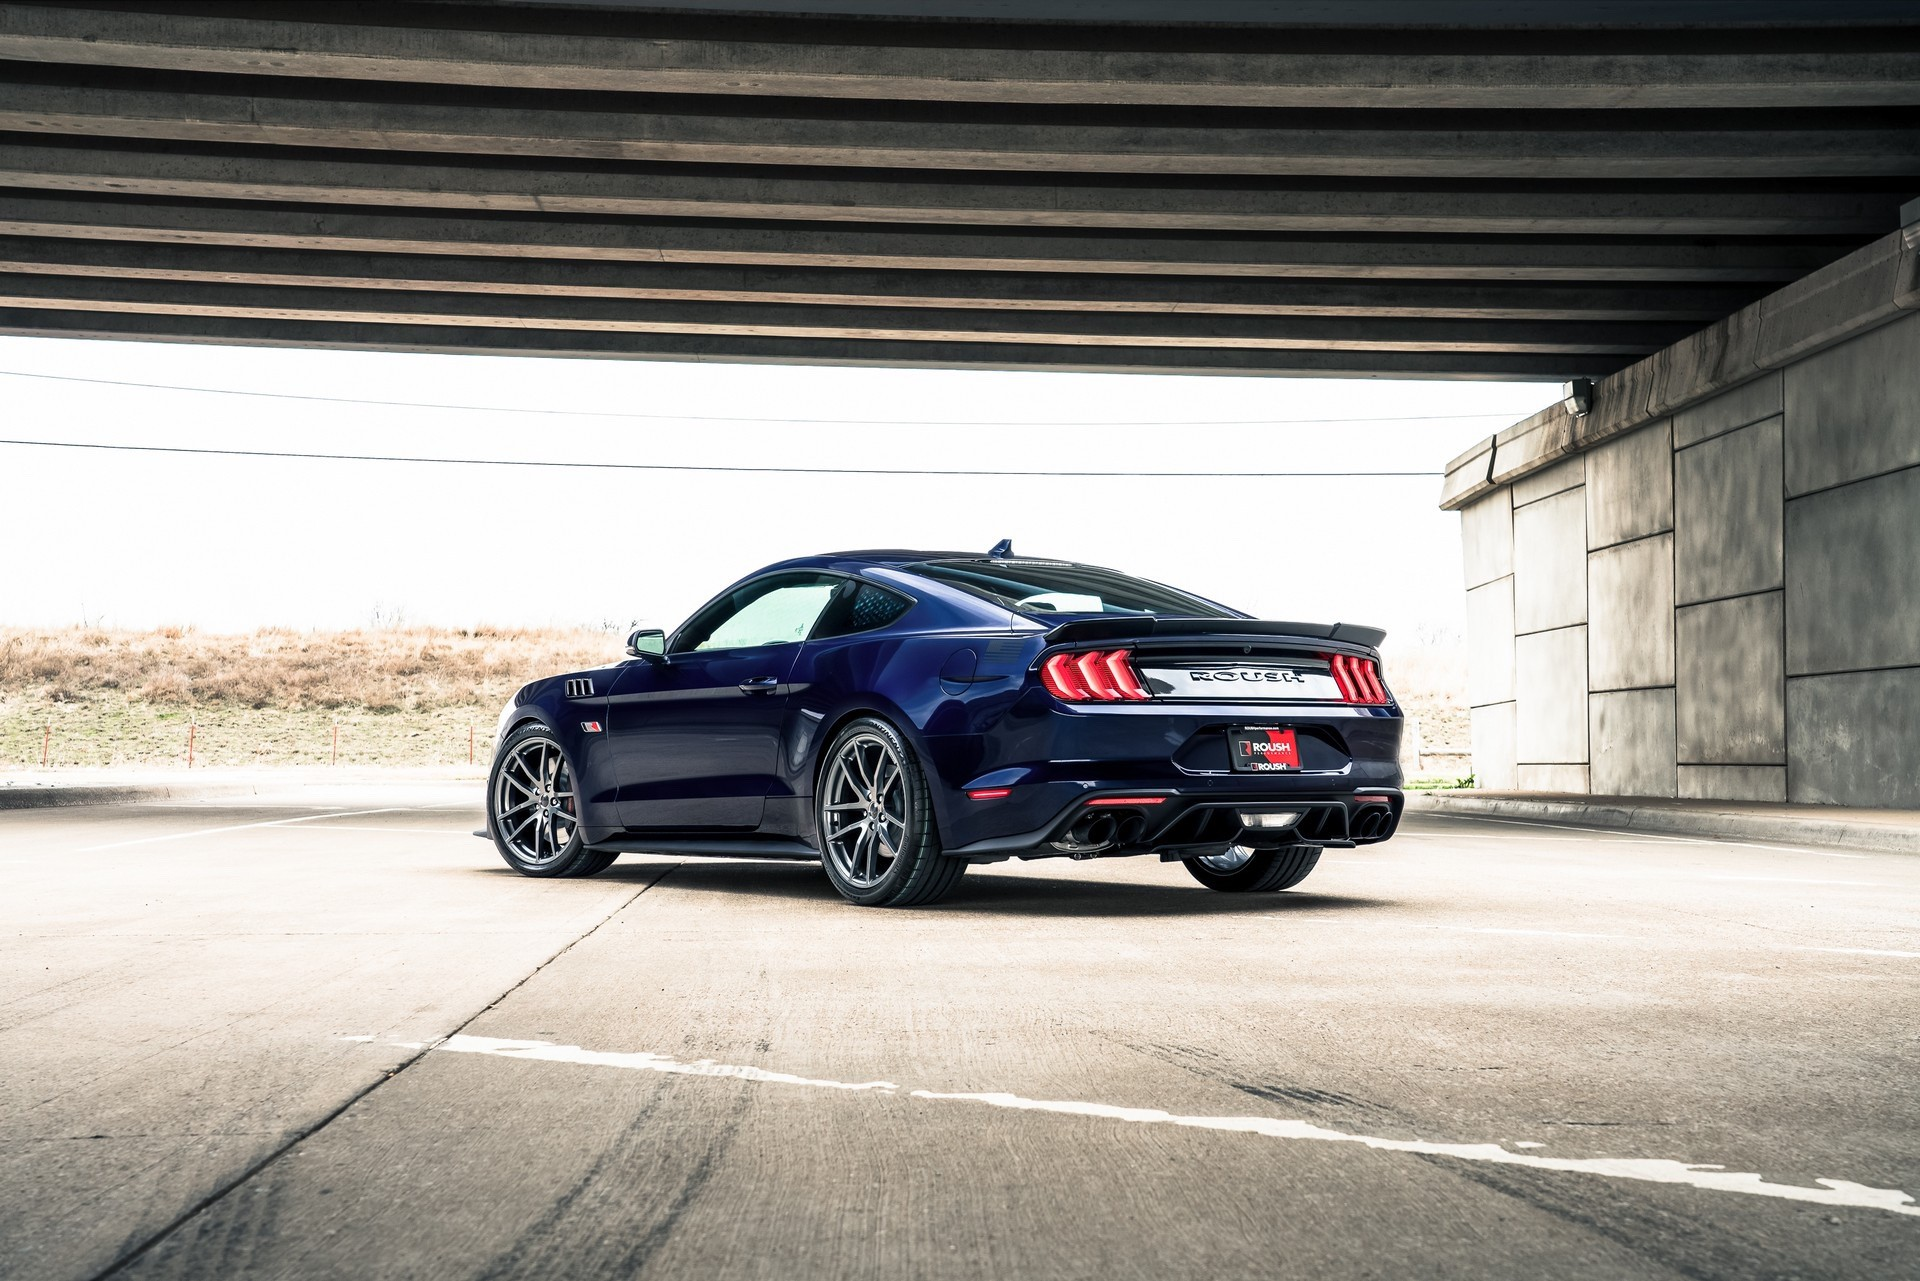 2021_Roush_Stage_3_Mustang-0003